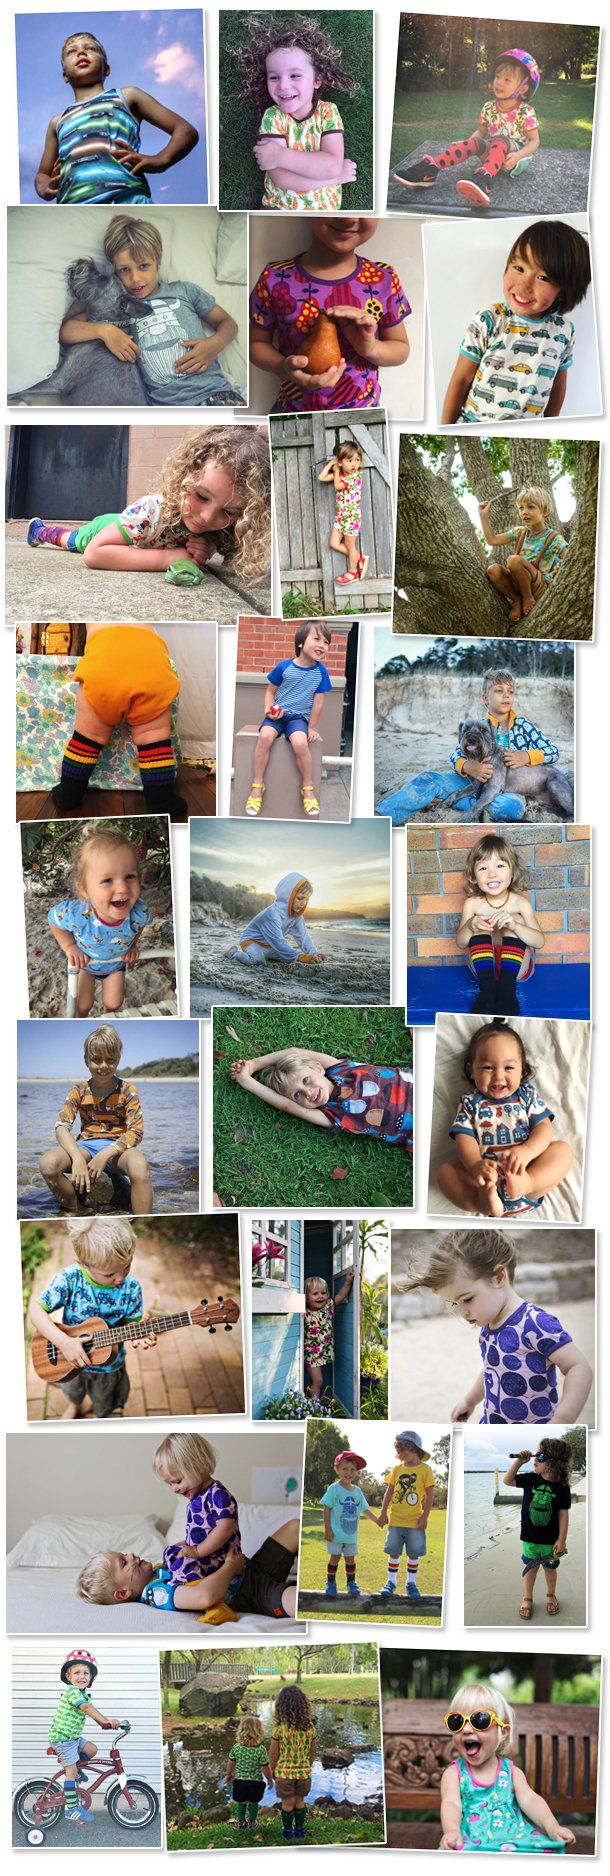 Photo gallery Retro Baby Clothes - Baby Boy clothes - Danish Baby Clothes - Smafolk - Toddler clothing - Baby Clothing - Baby clothes Online